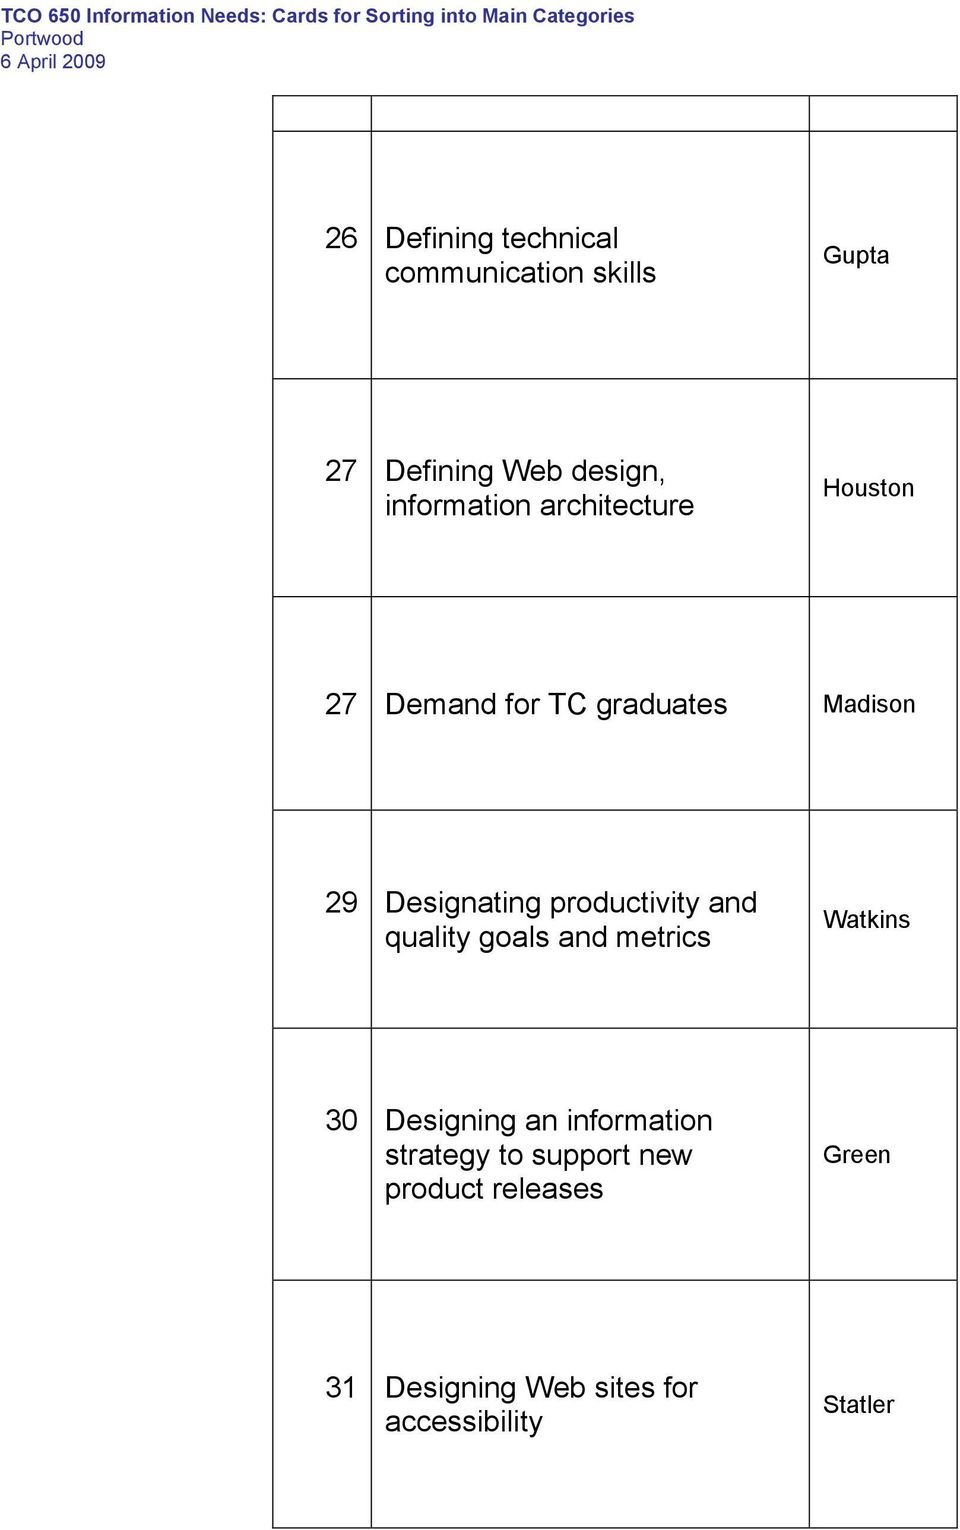 productivity and quality goals and metrics Watkins 30 Designing an information